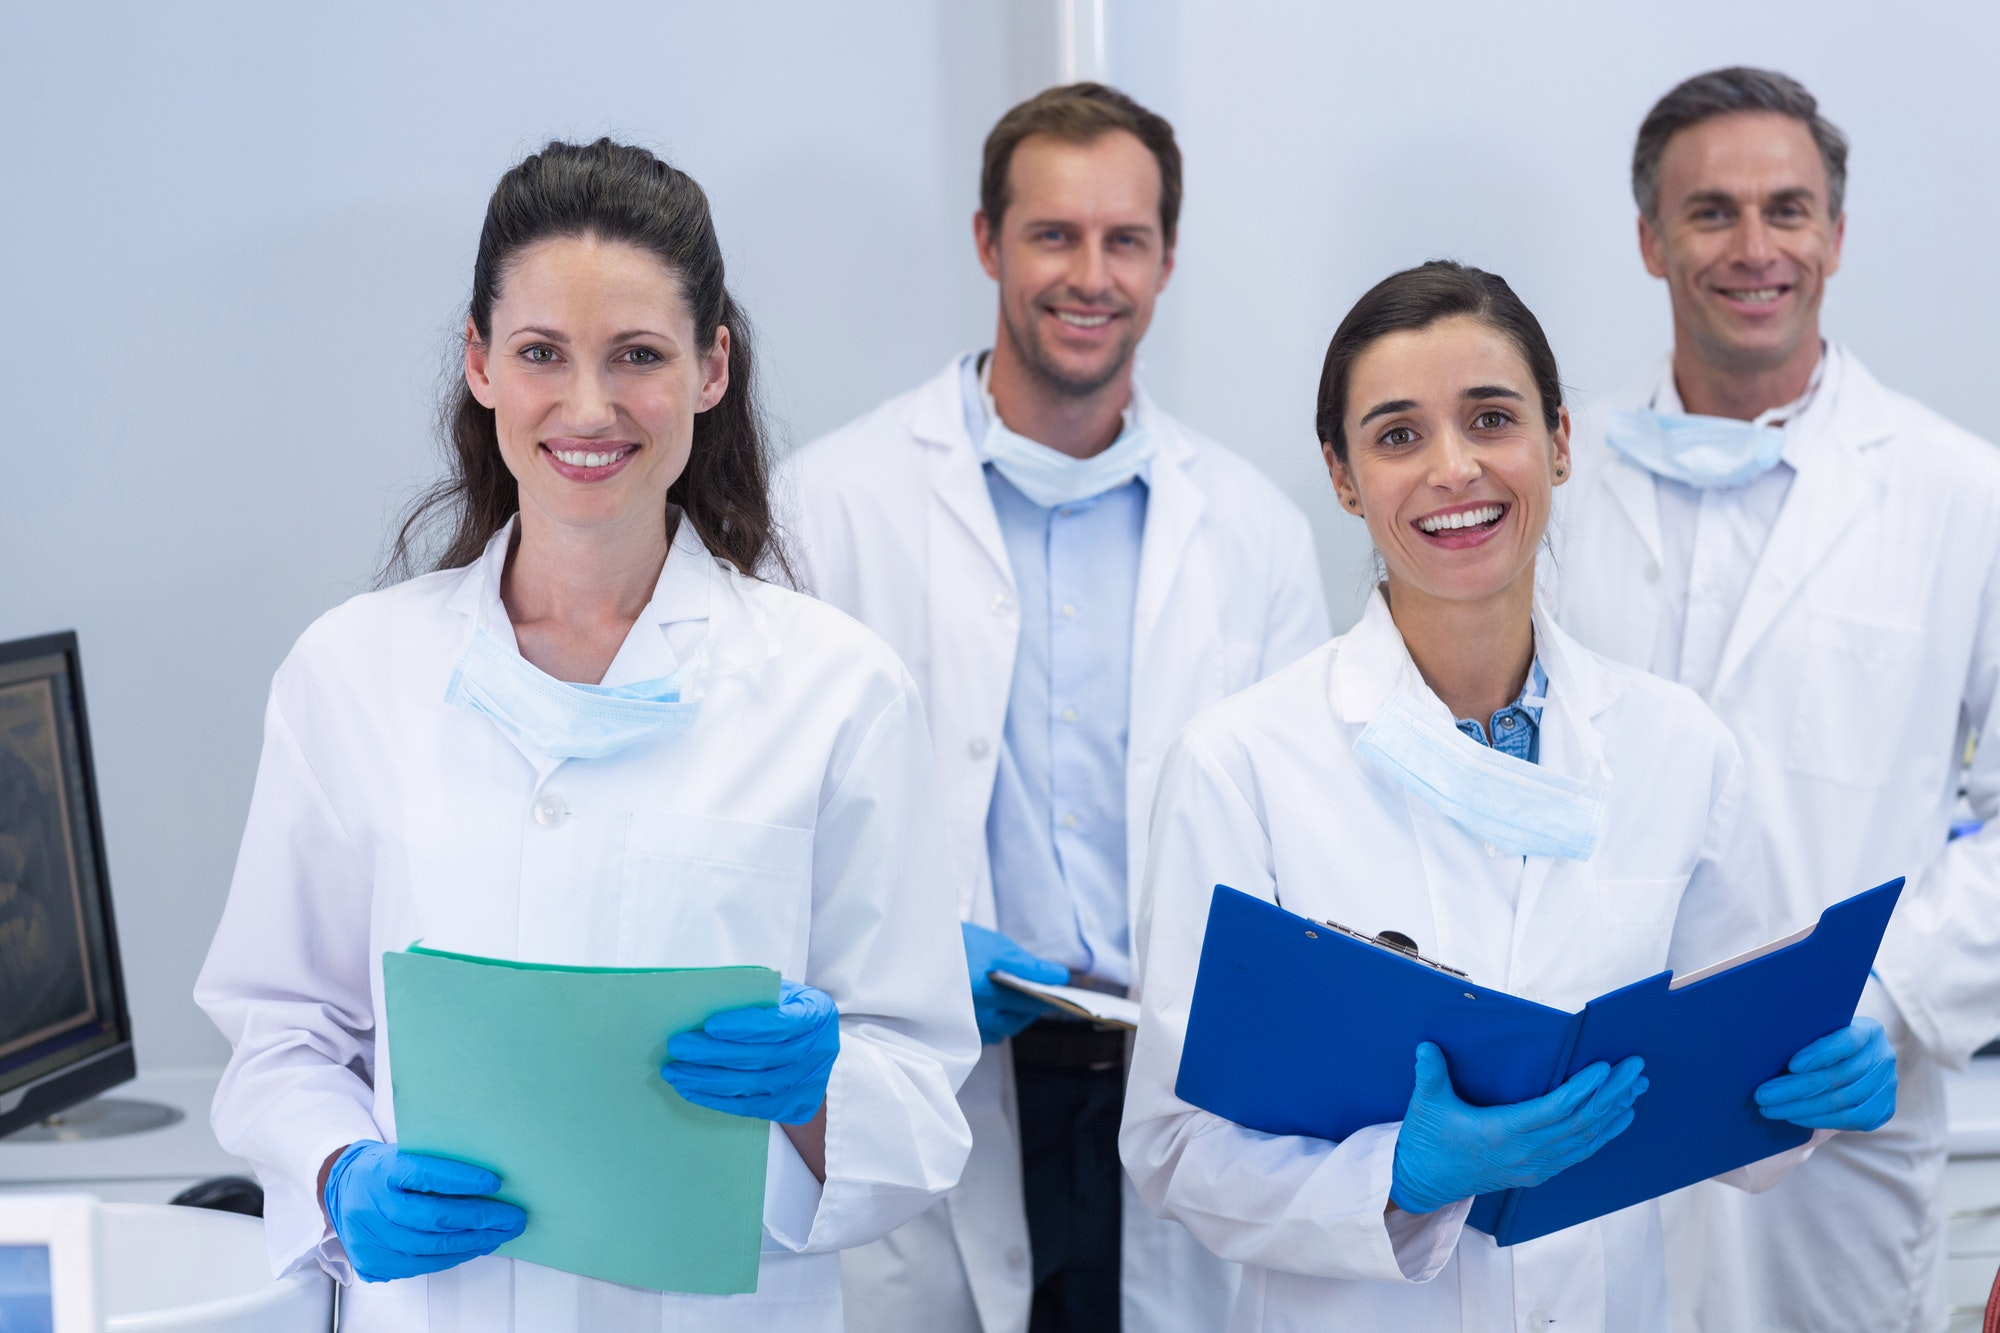 smiling-dentists-standing-in-dental-clinic.jpg